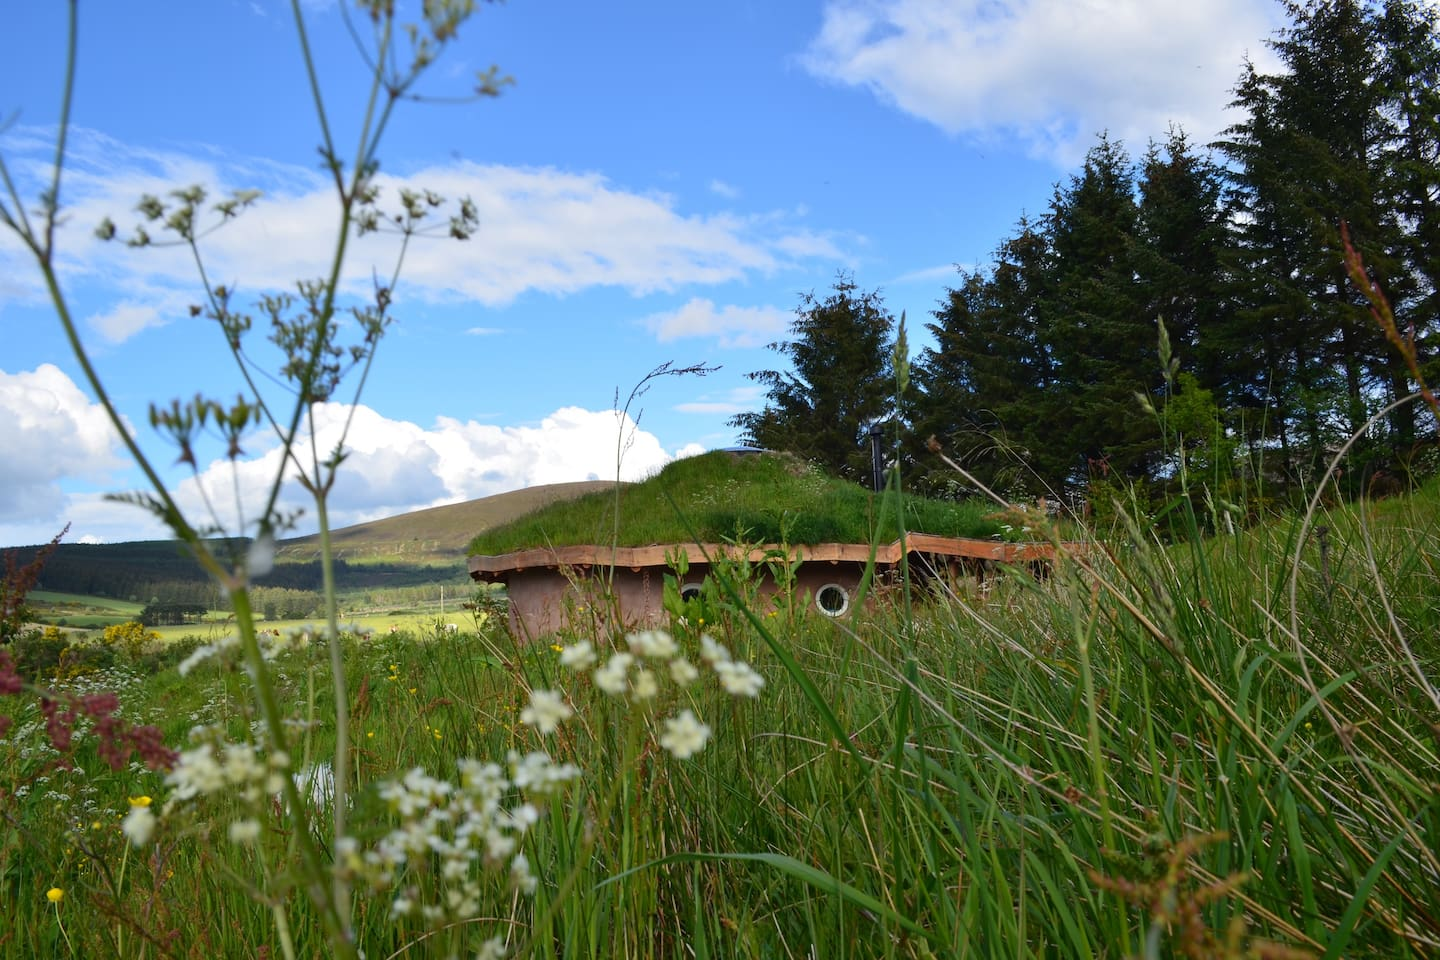 Hobbit Hideaway, a natural home nestled in a wee slice of Scottish paradise!